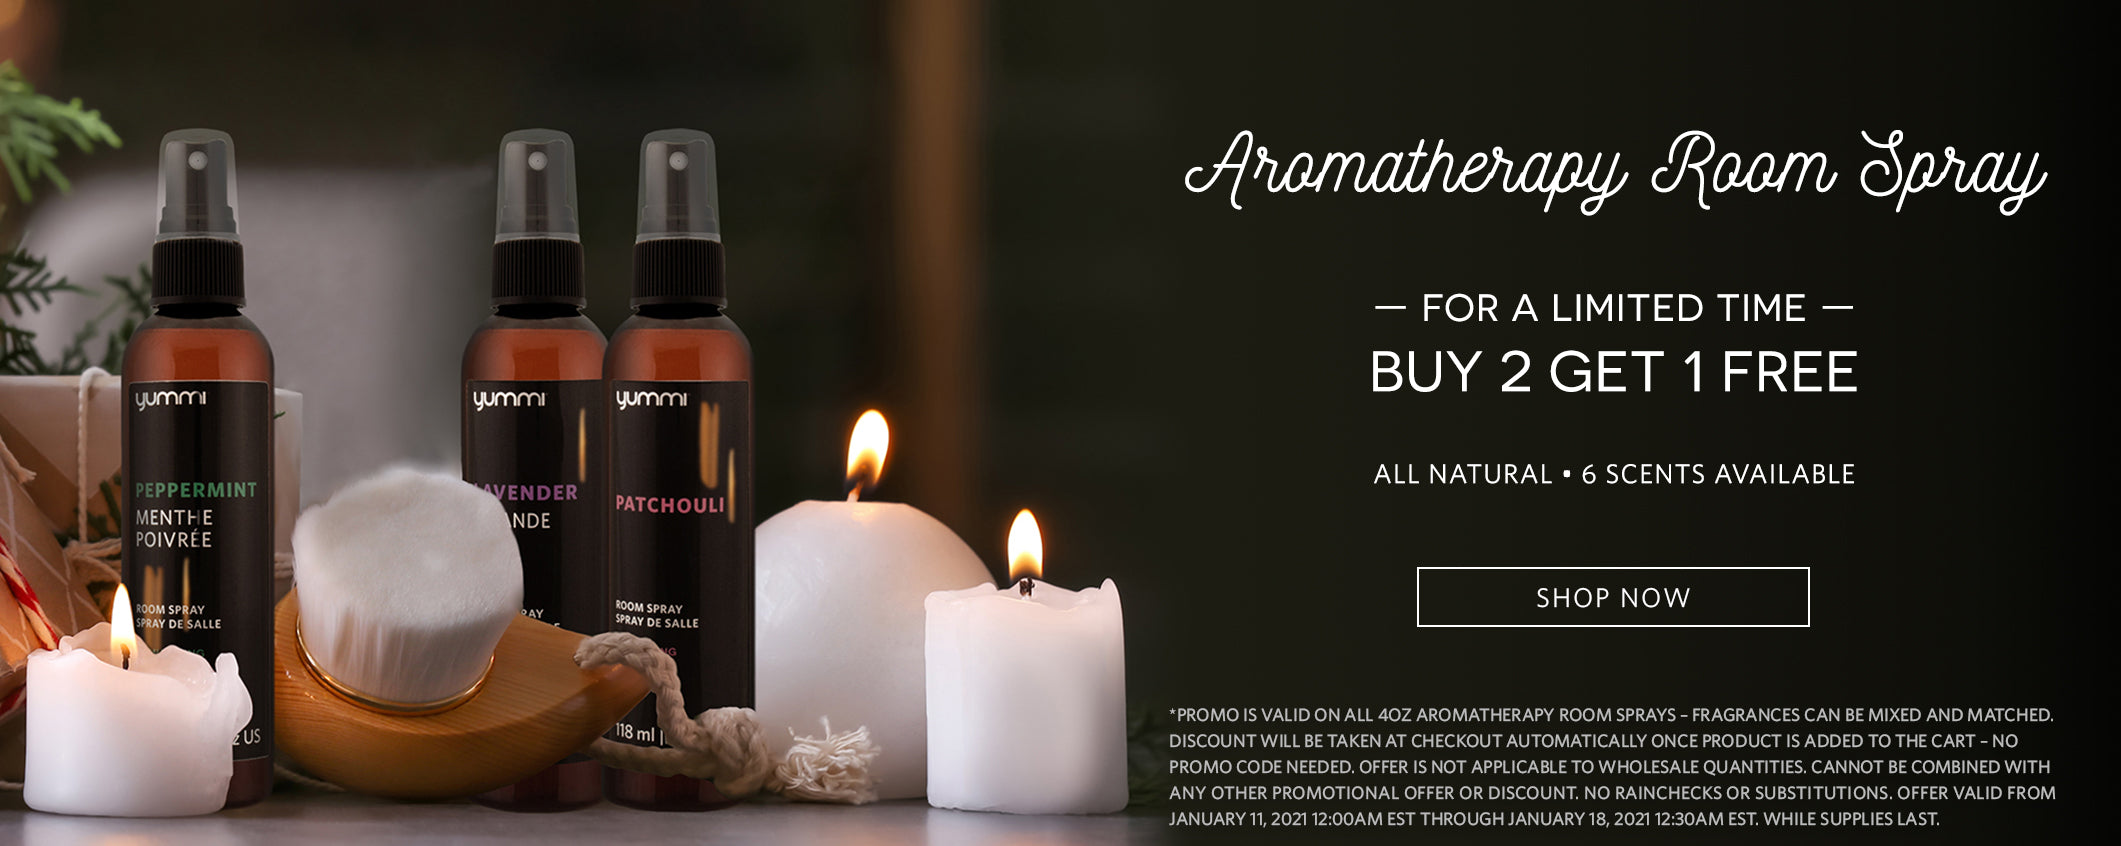 Aromatherapy Room Spray. For a limited time buy 2 get 1 free. All natural, 6 scents available.